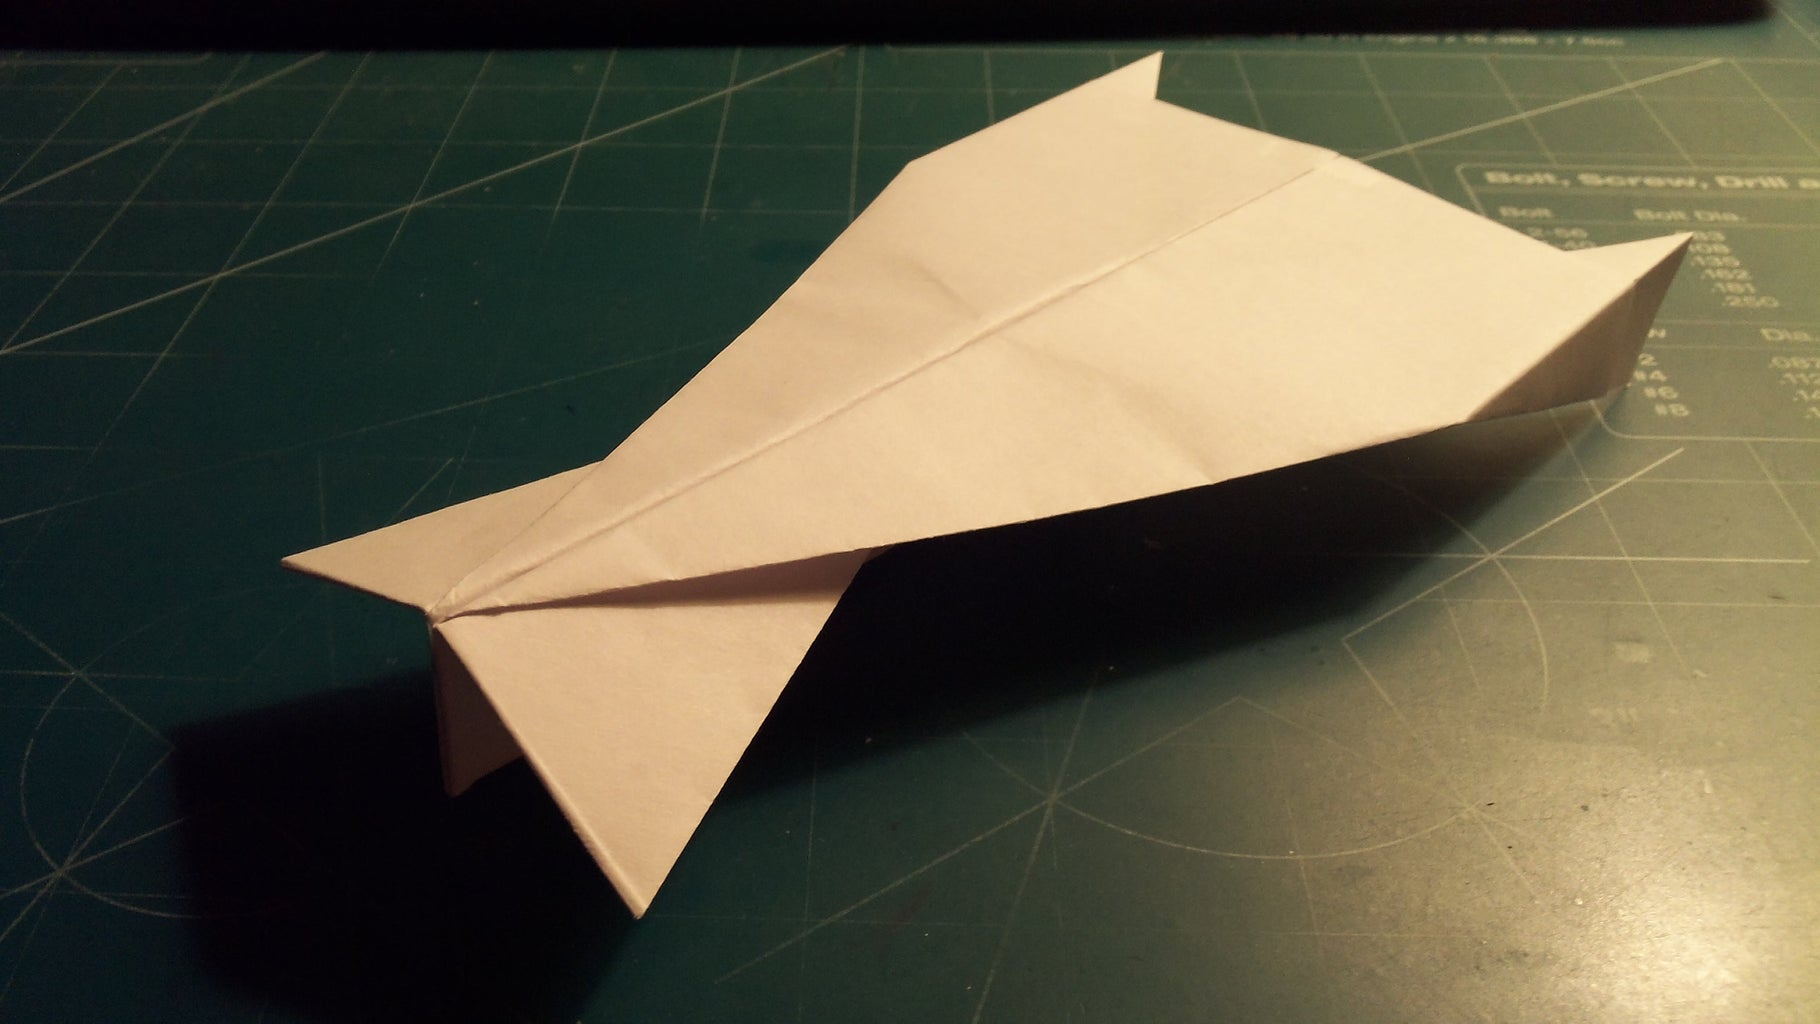 How to Make the Ultraceptor Paper Airplane